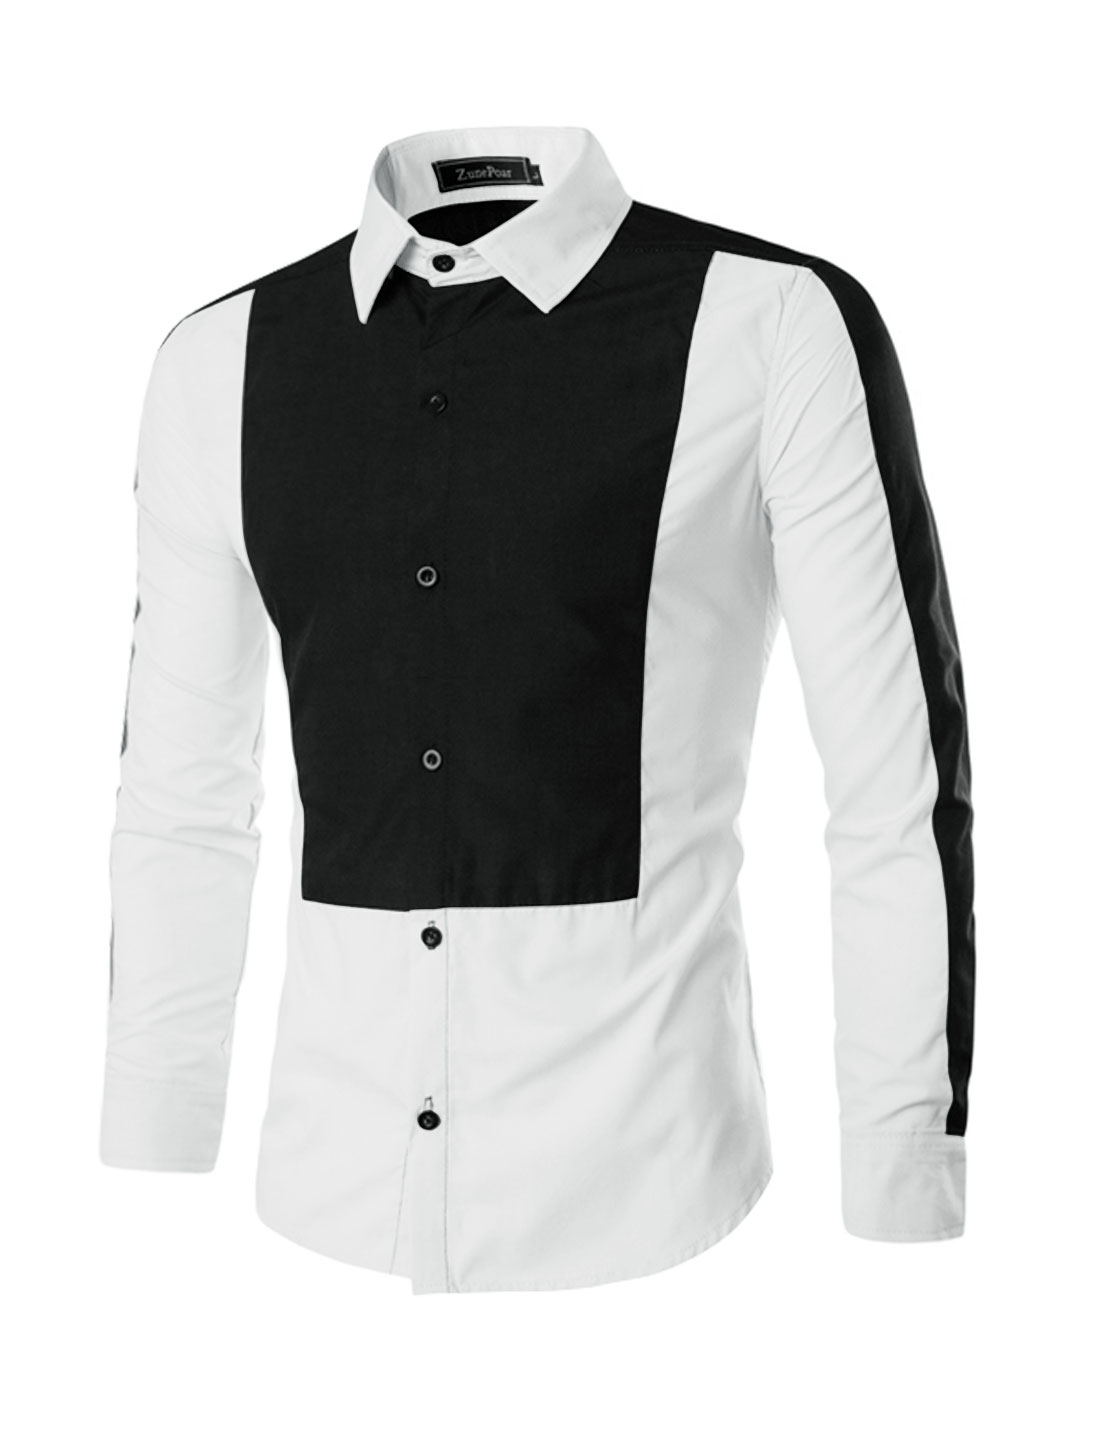 Men Long Sleeves Contrast Color Button Up Casual Shirt White M